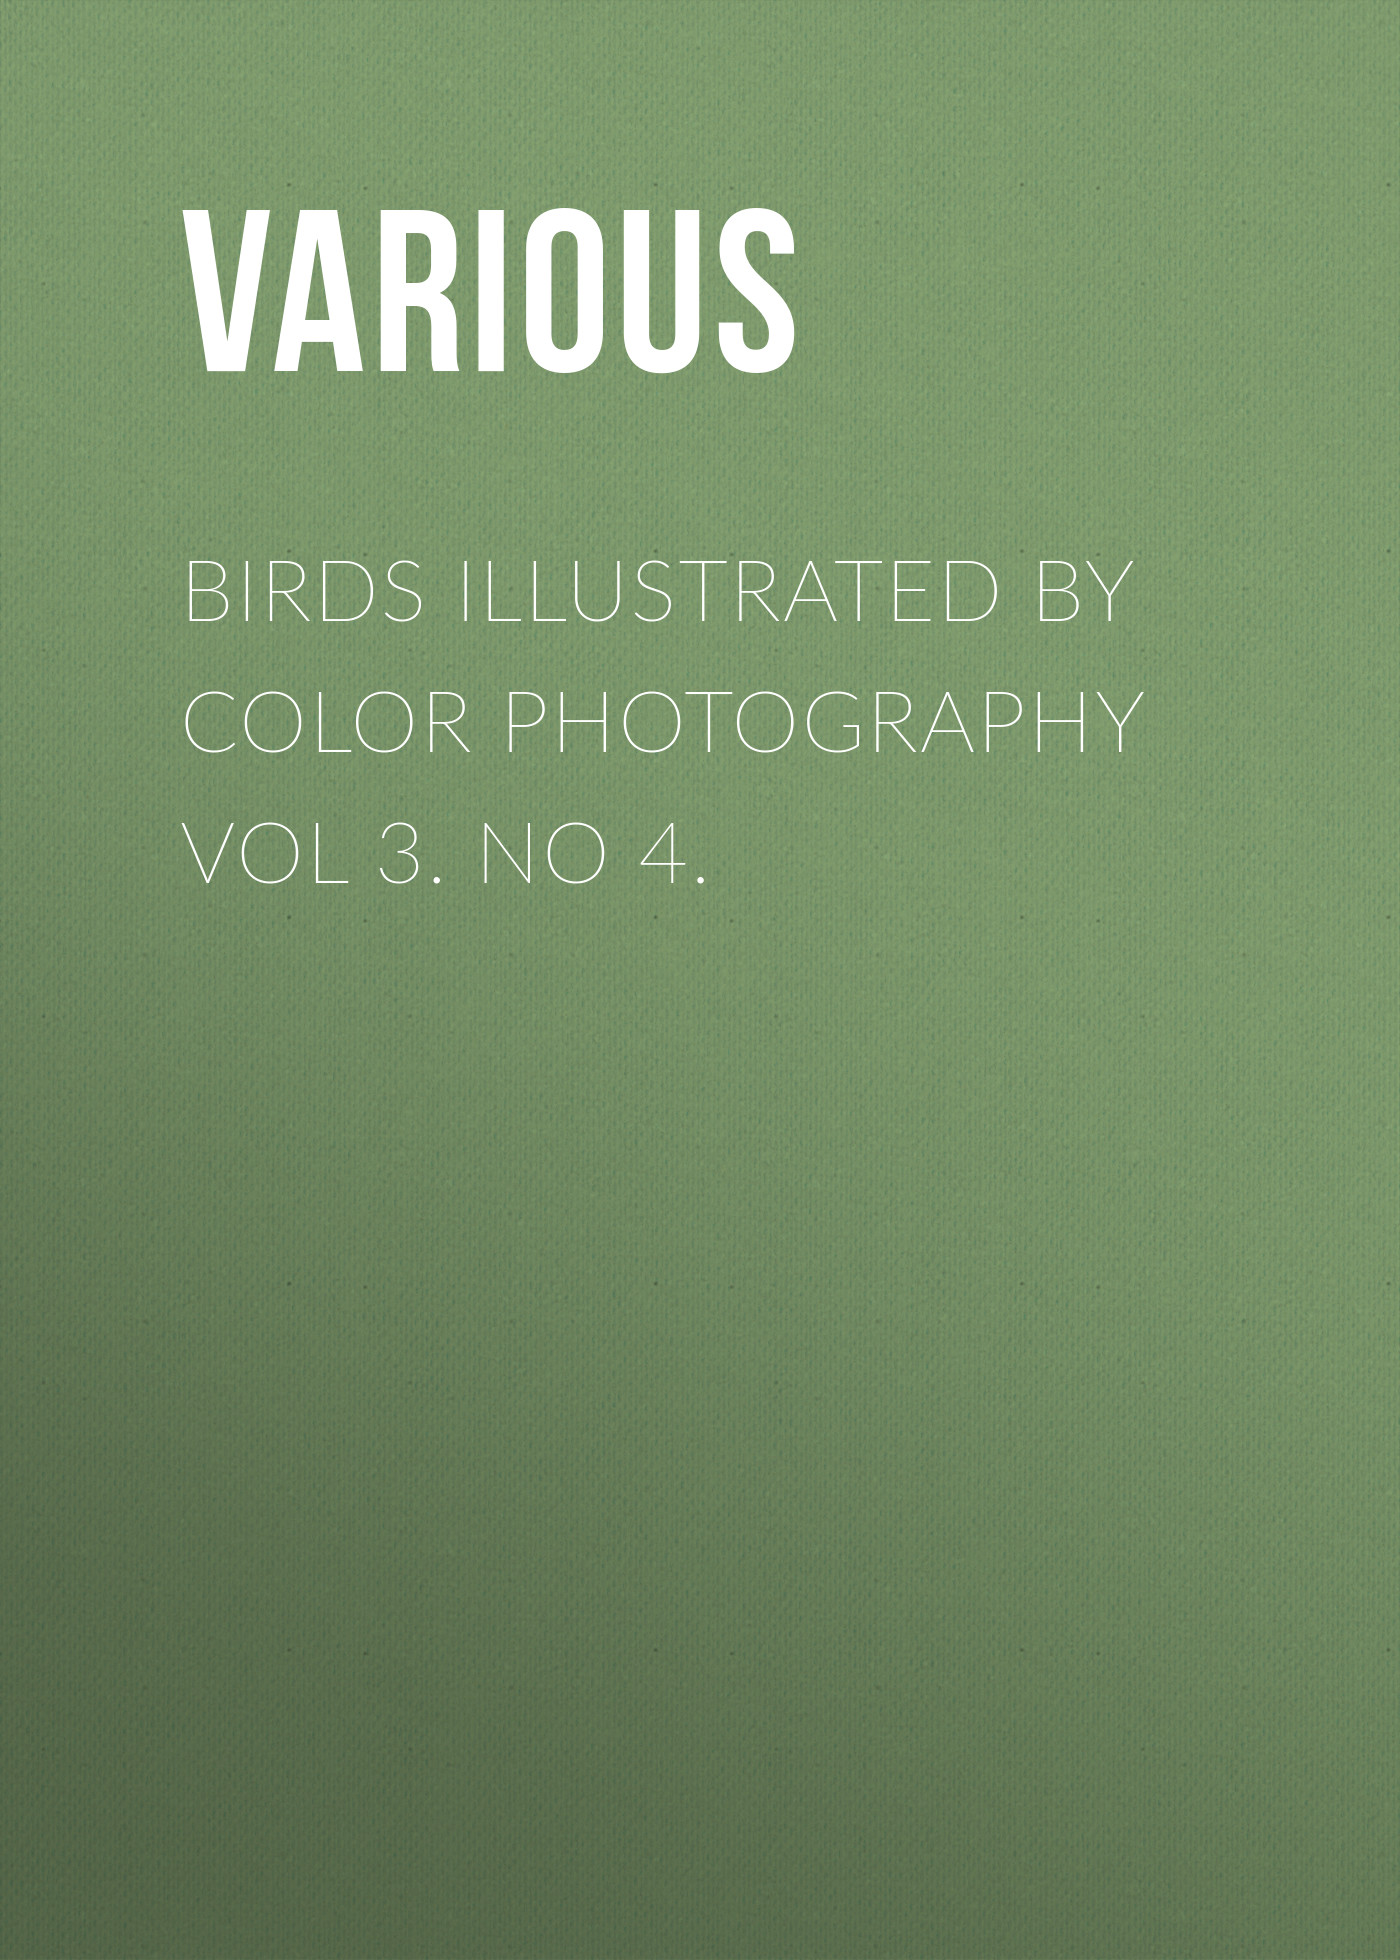 цена Various Birds Illustrated by Color Photography Vol 3. No 4. онлайн в 2017 году